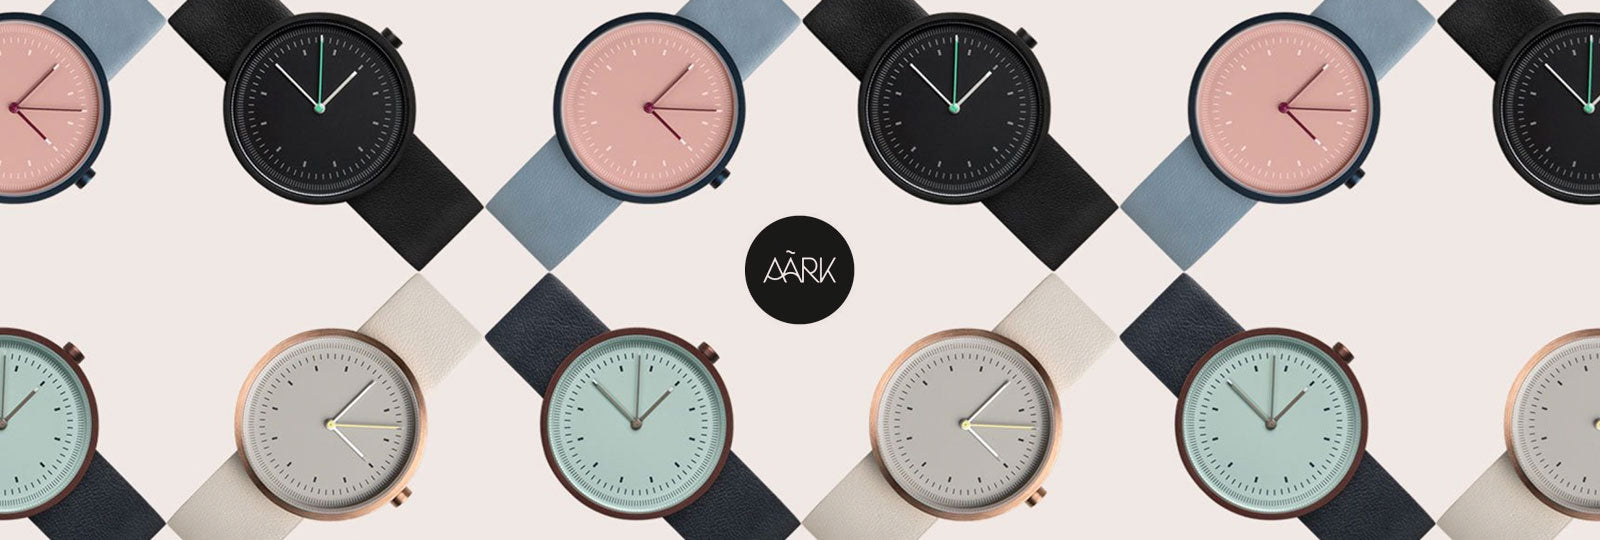 Aark is available at Sportique